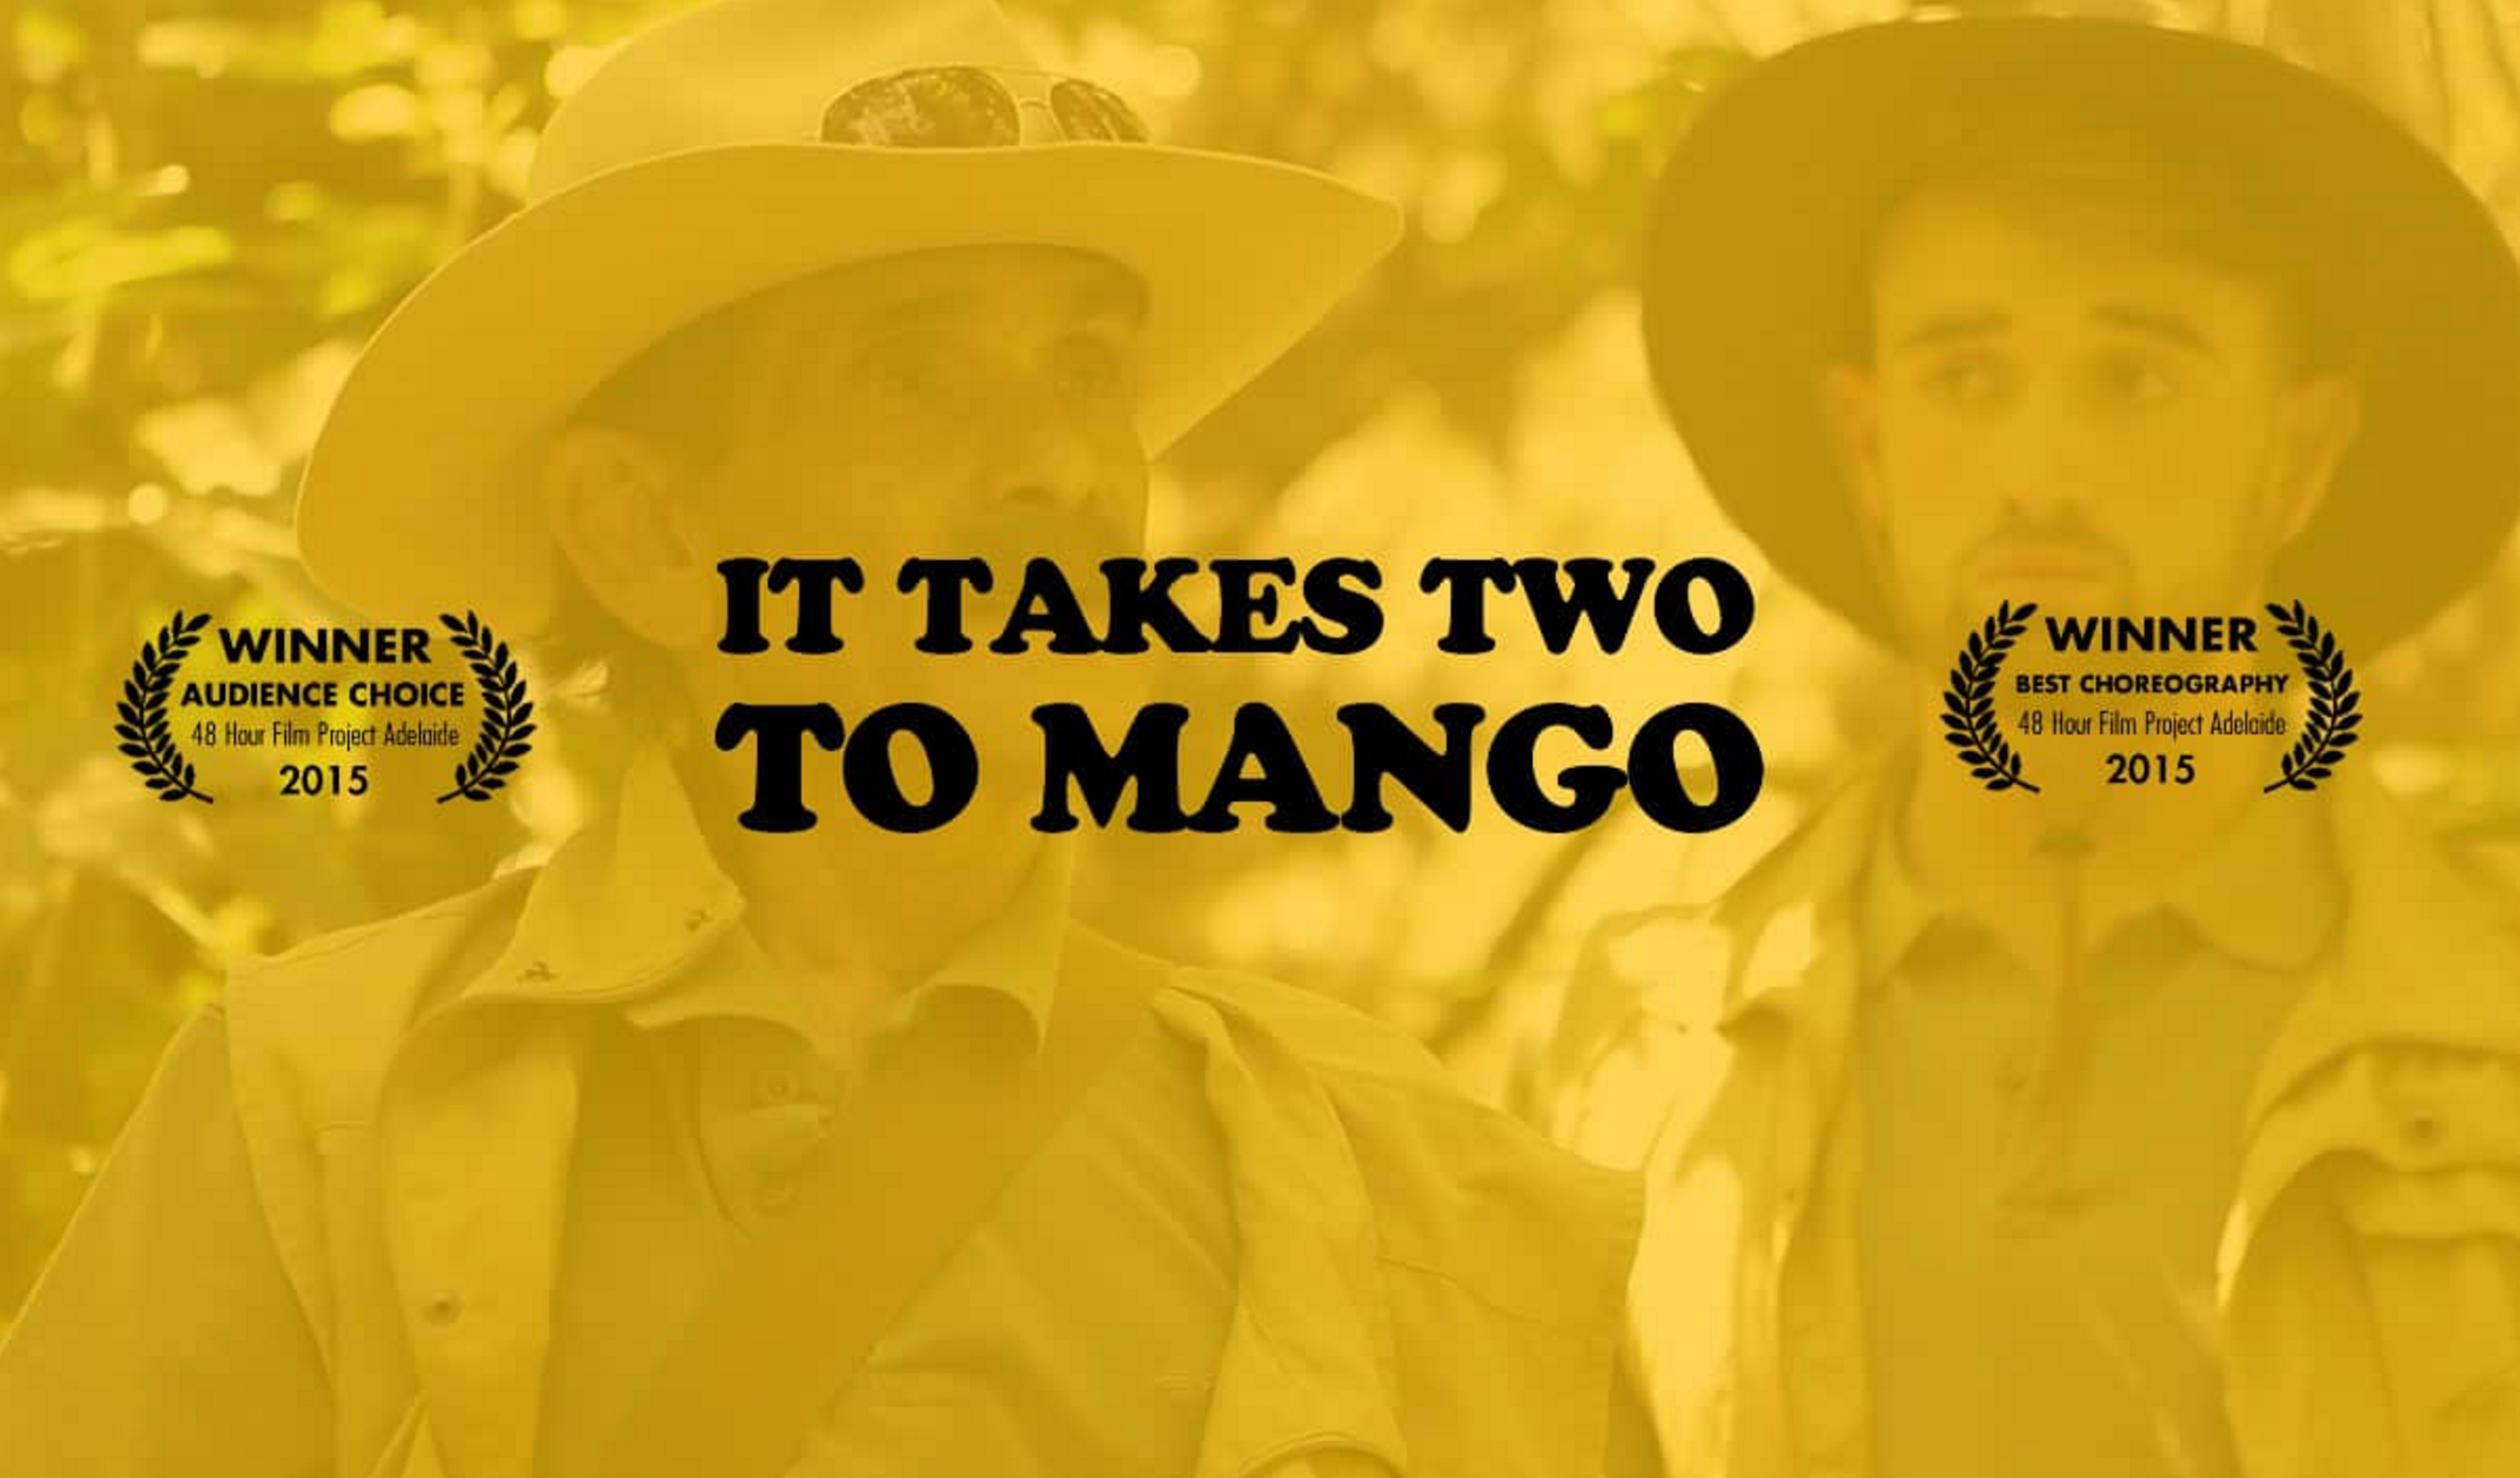 It Takes Two to Mango